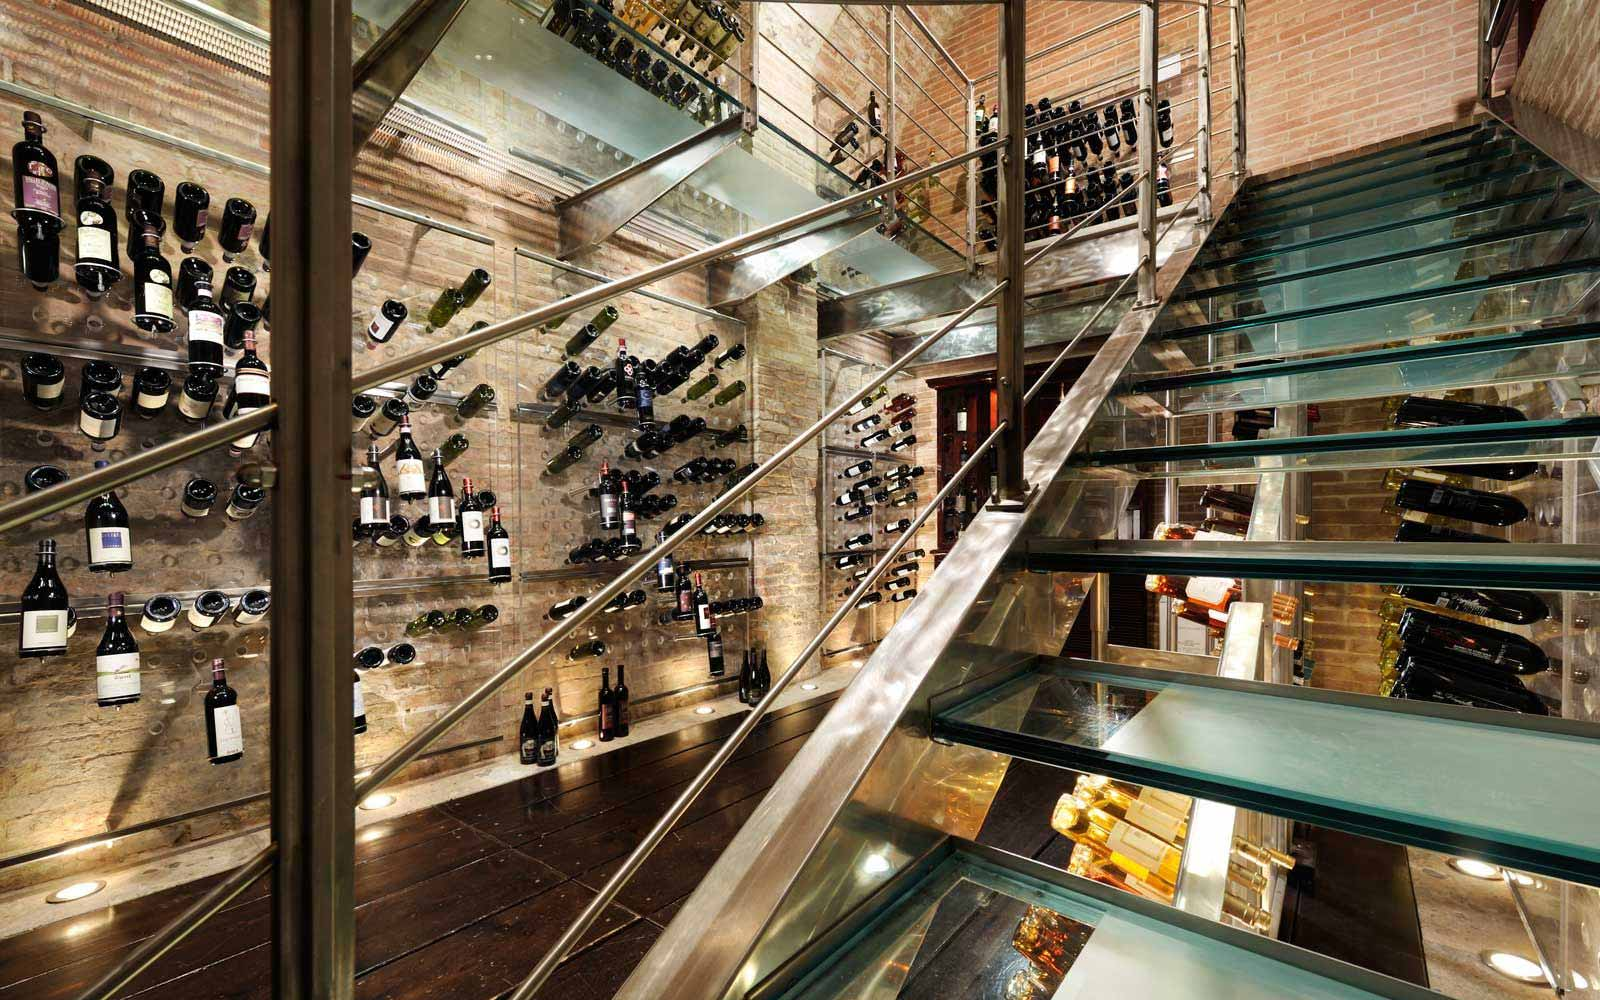 Wine cellar at the Grand Hotel Continental